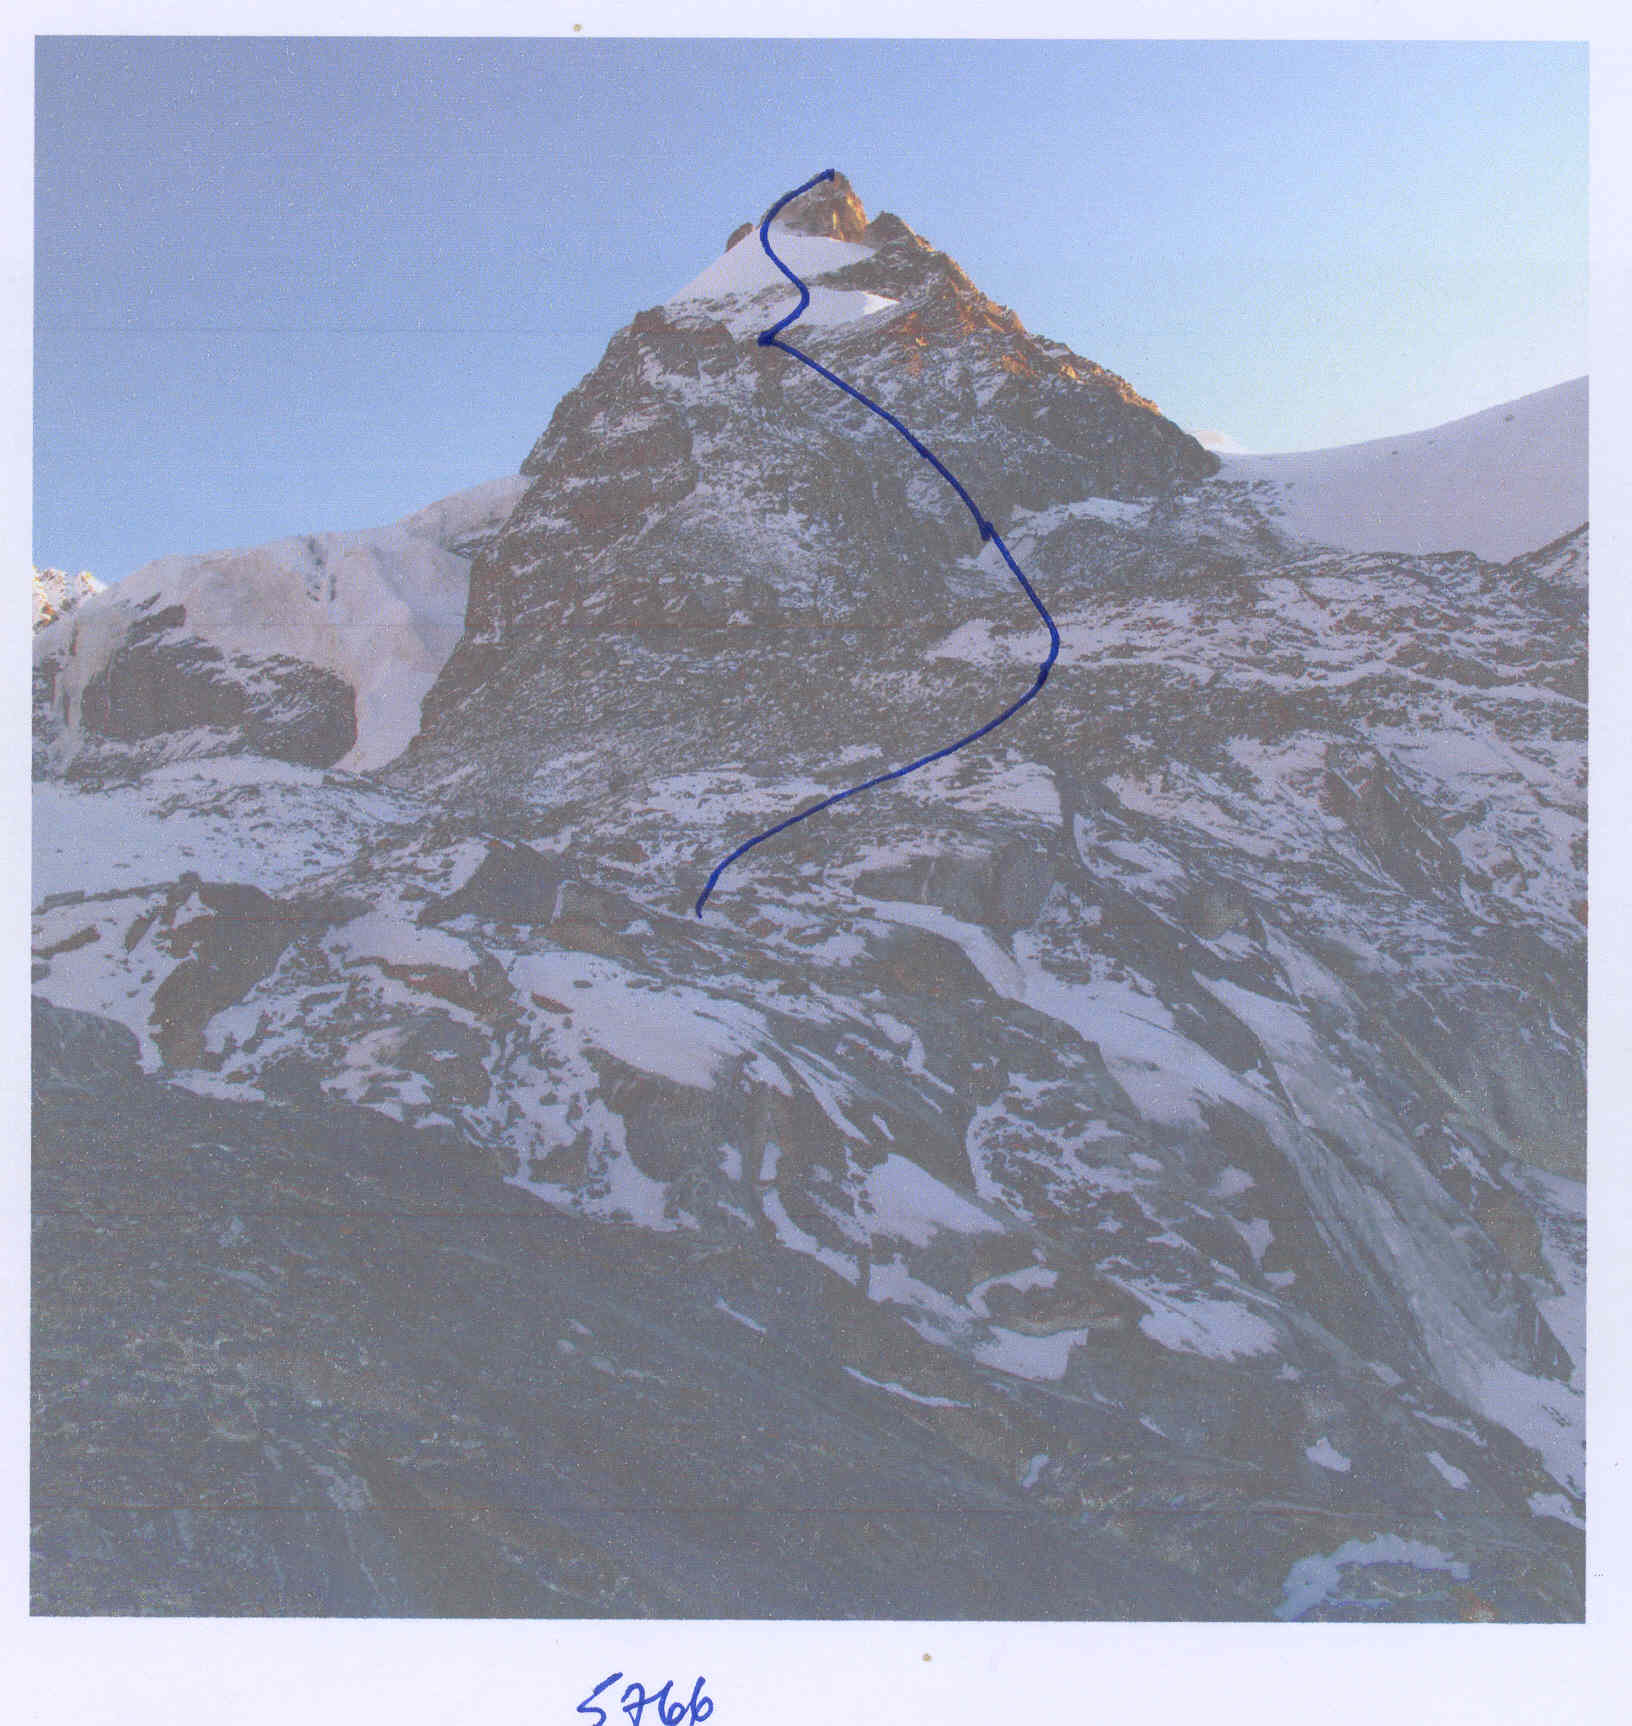 Pt. 5,766m and American route of ascent on west face to north ridge.